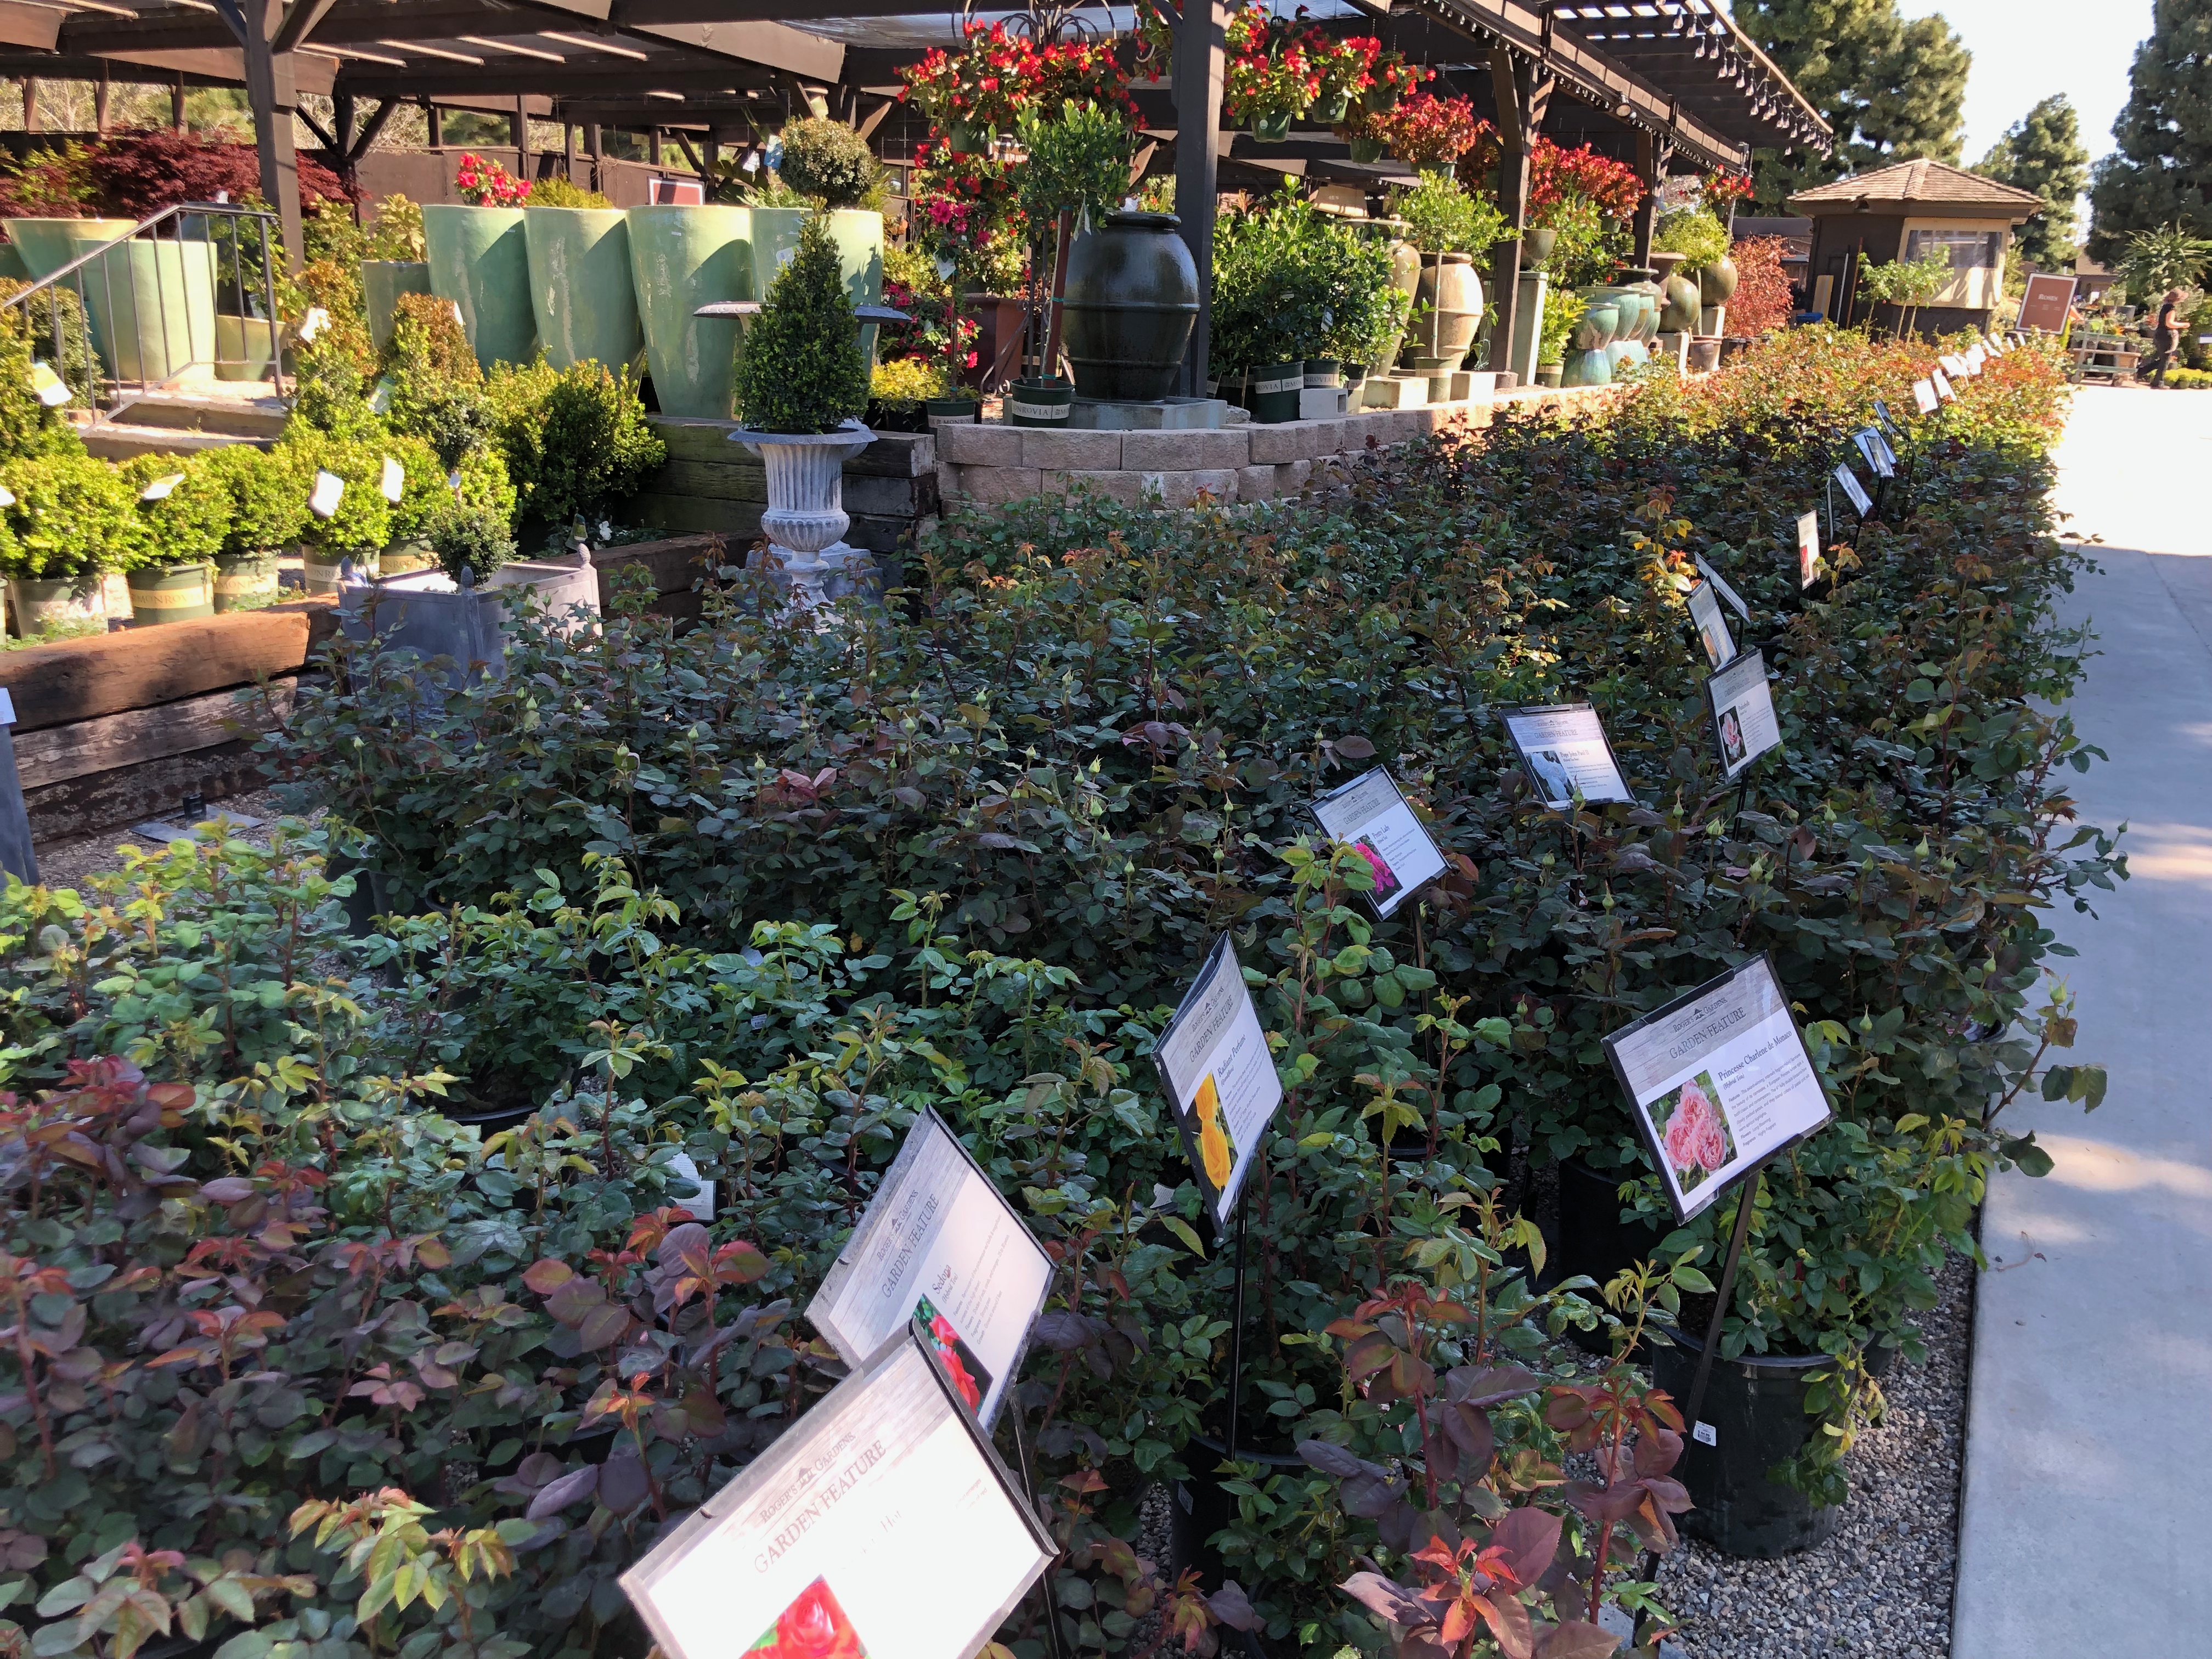 Some of the Rose Plants at Roger's Gardens